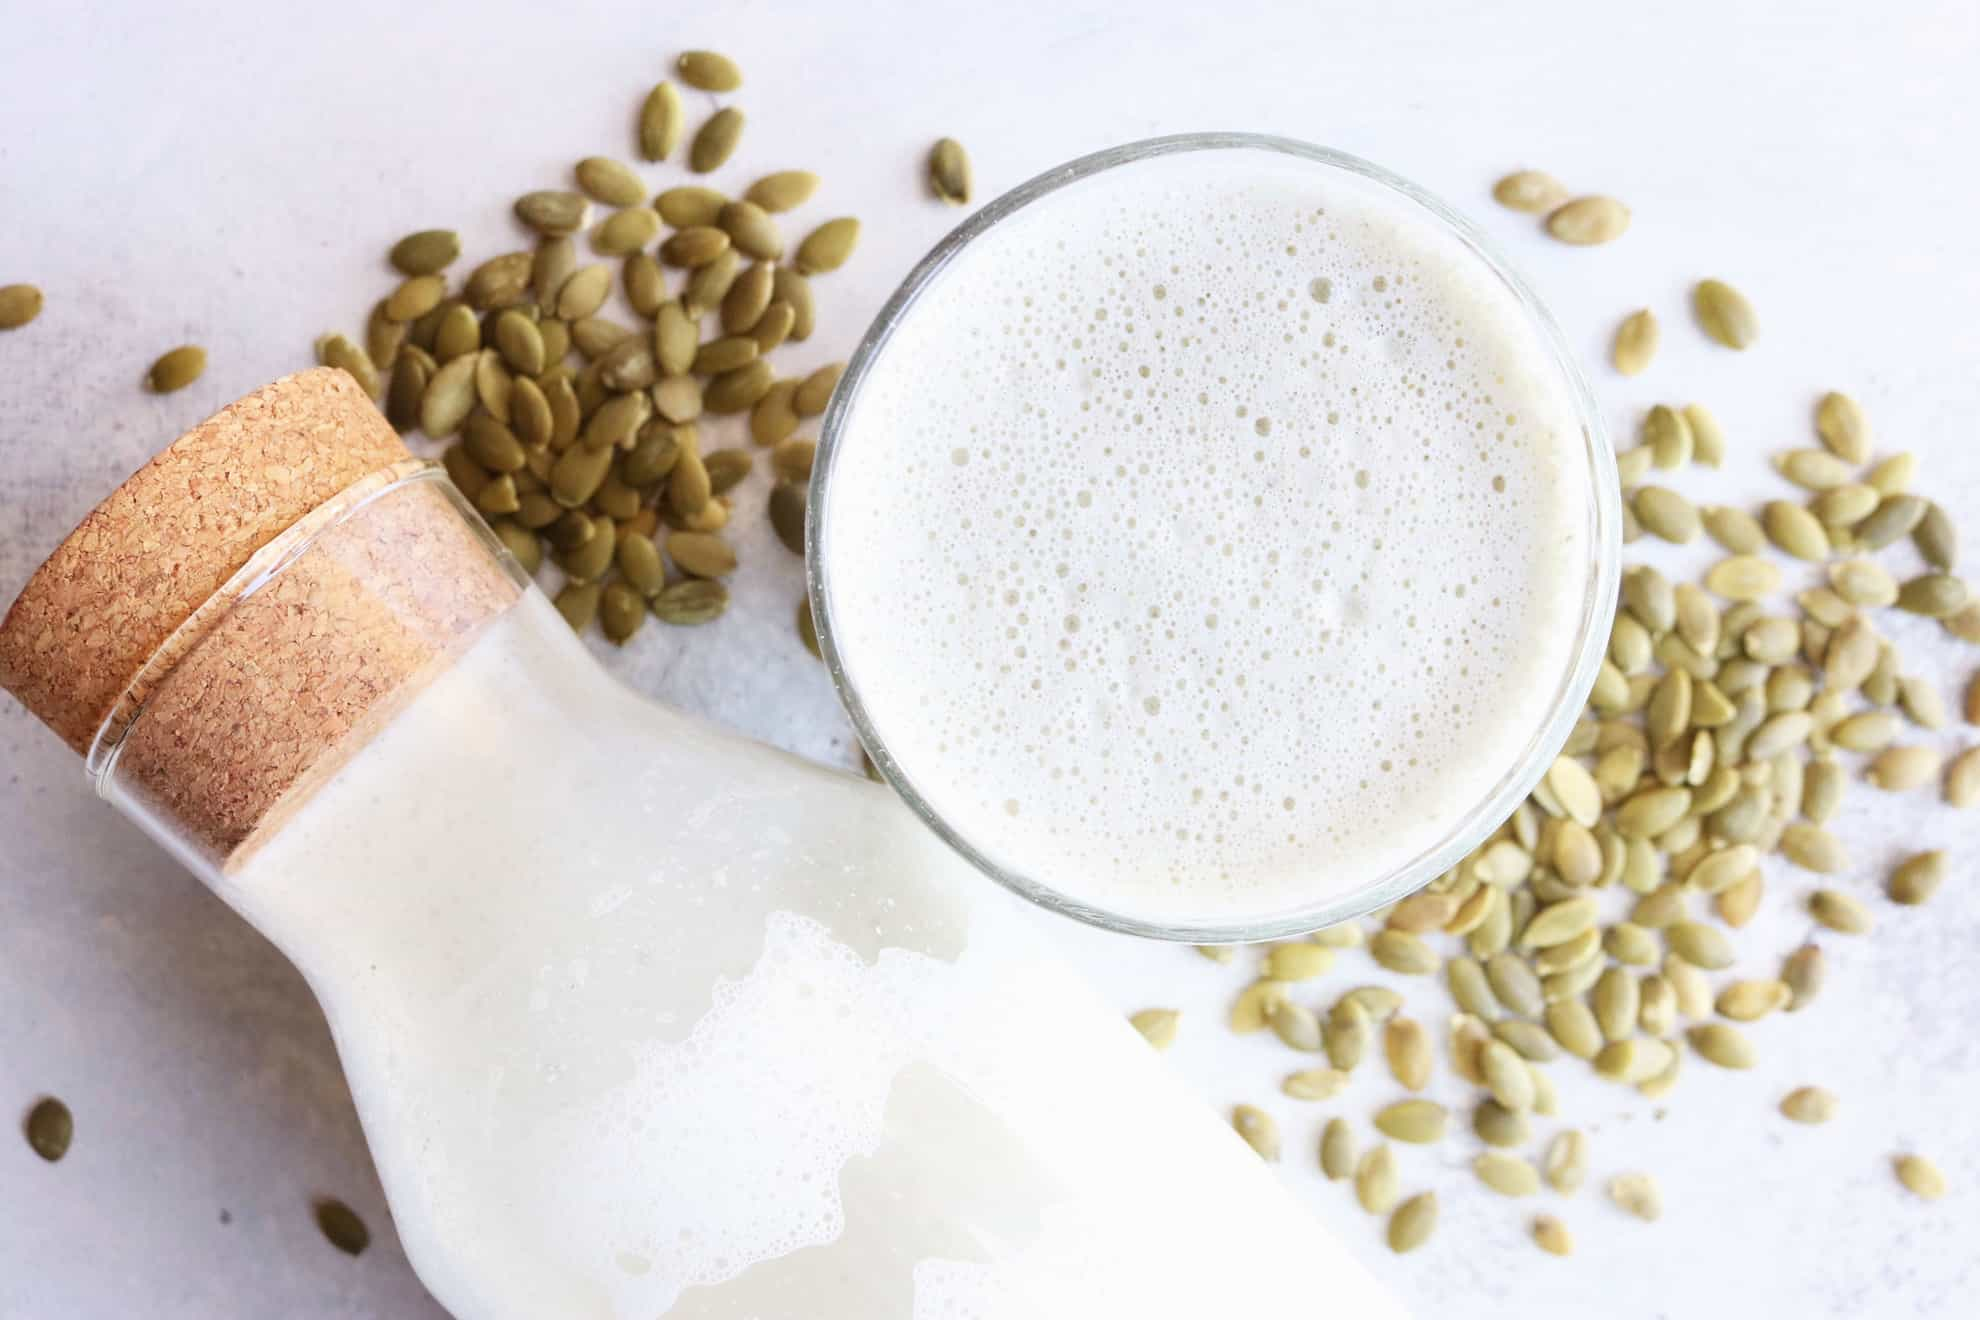 How to Make: Pumpkin Seed Milk